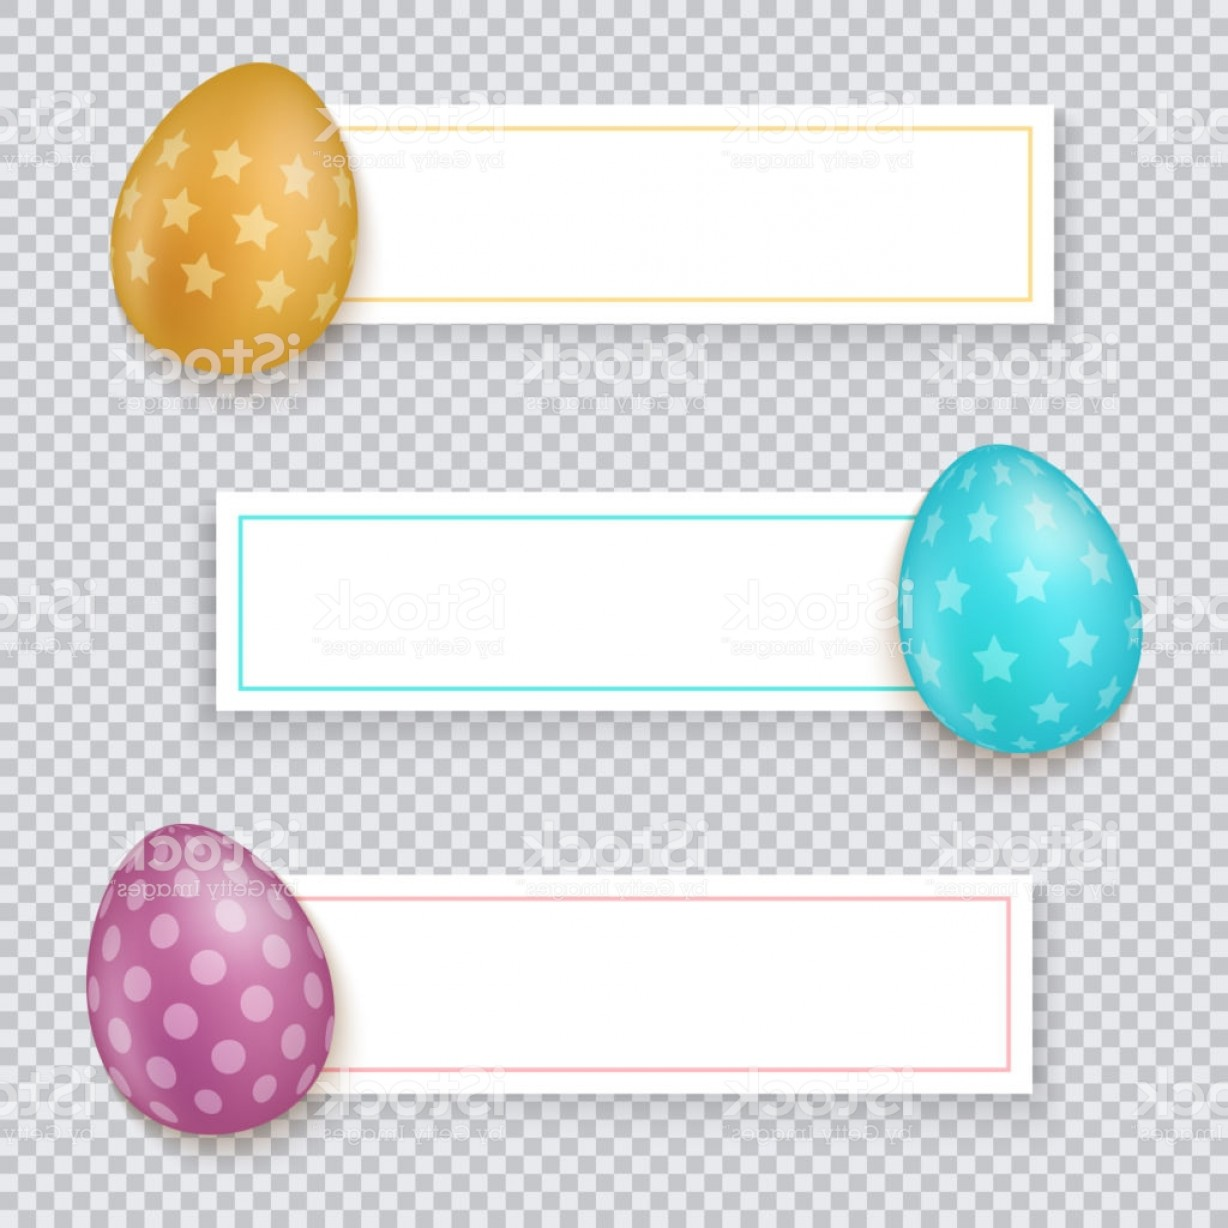 Easter Vector Art No Background: Easter Banners Set Easter Banners With Multicolored Eggs On Transparent Background Gm